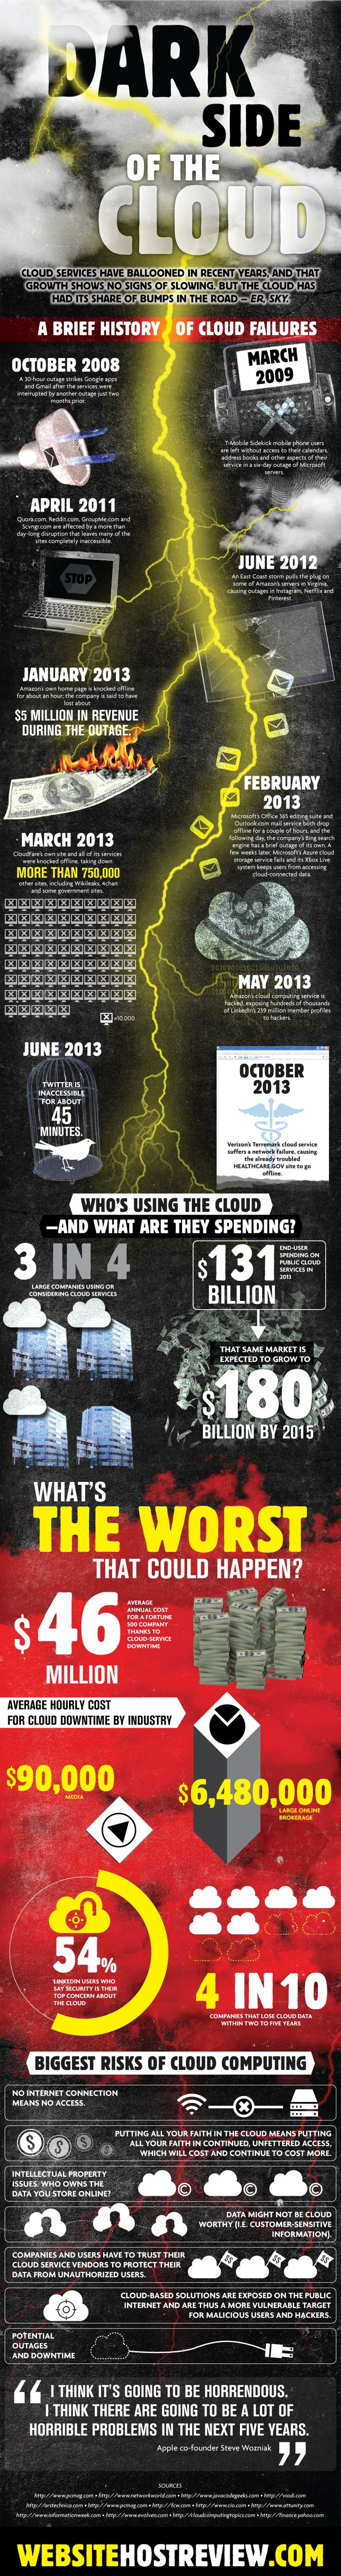 The Dark Side of Cloud Computing, http://www.activistpost.com/2014/02/the-dark-side-of-cloud-computing.html #CloudComputing